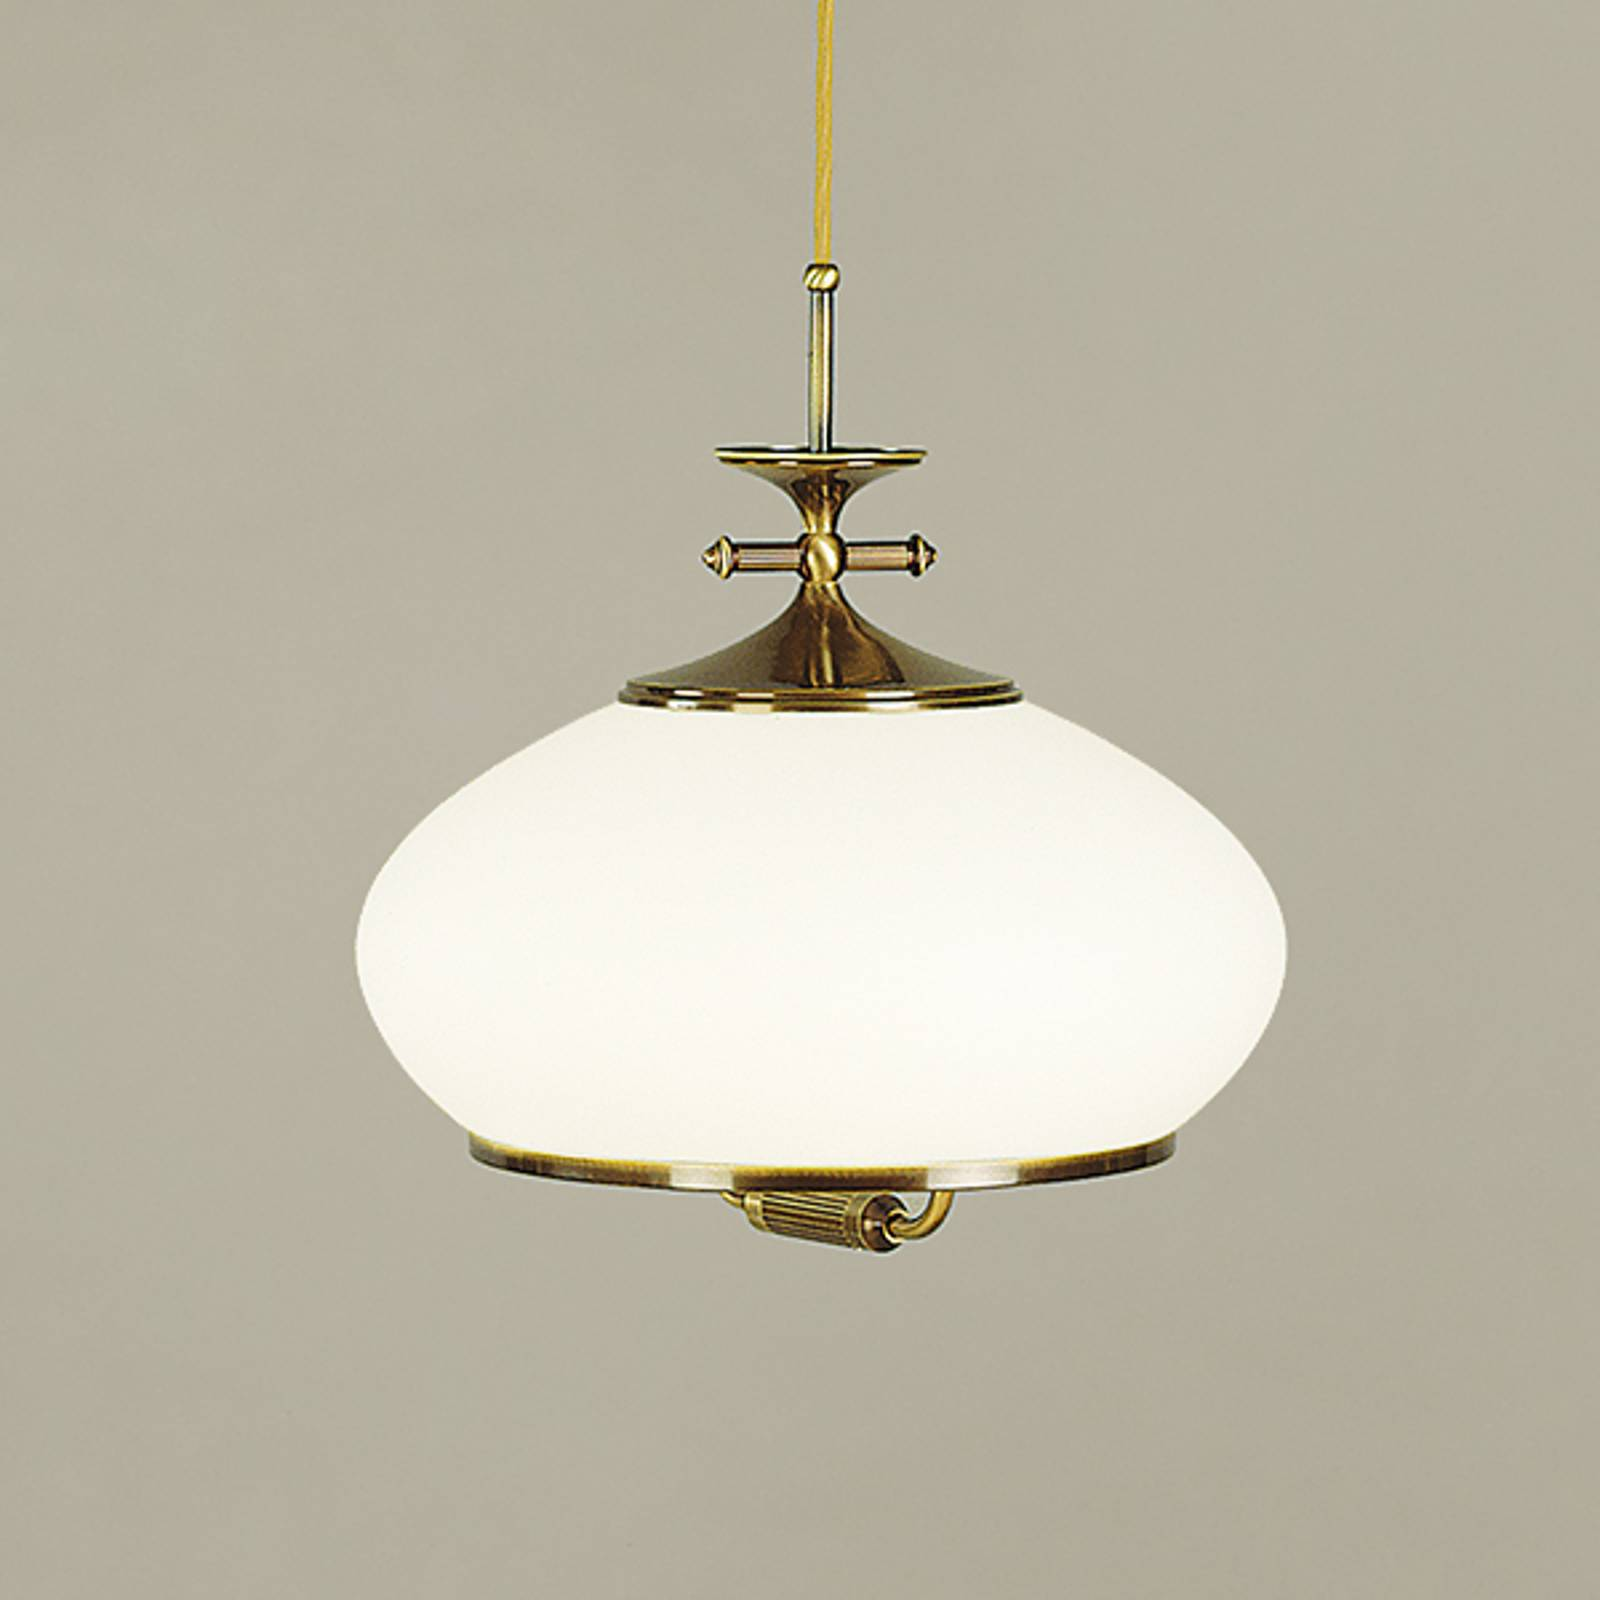 Empira Hanging Light Height Adjustable from Orion